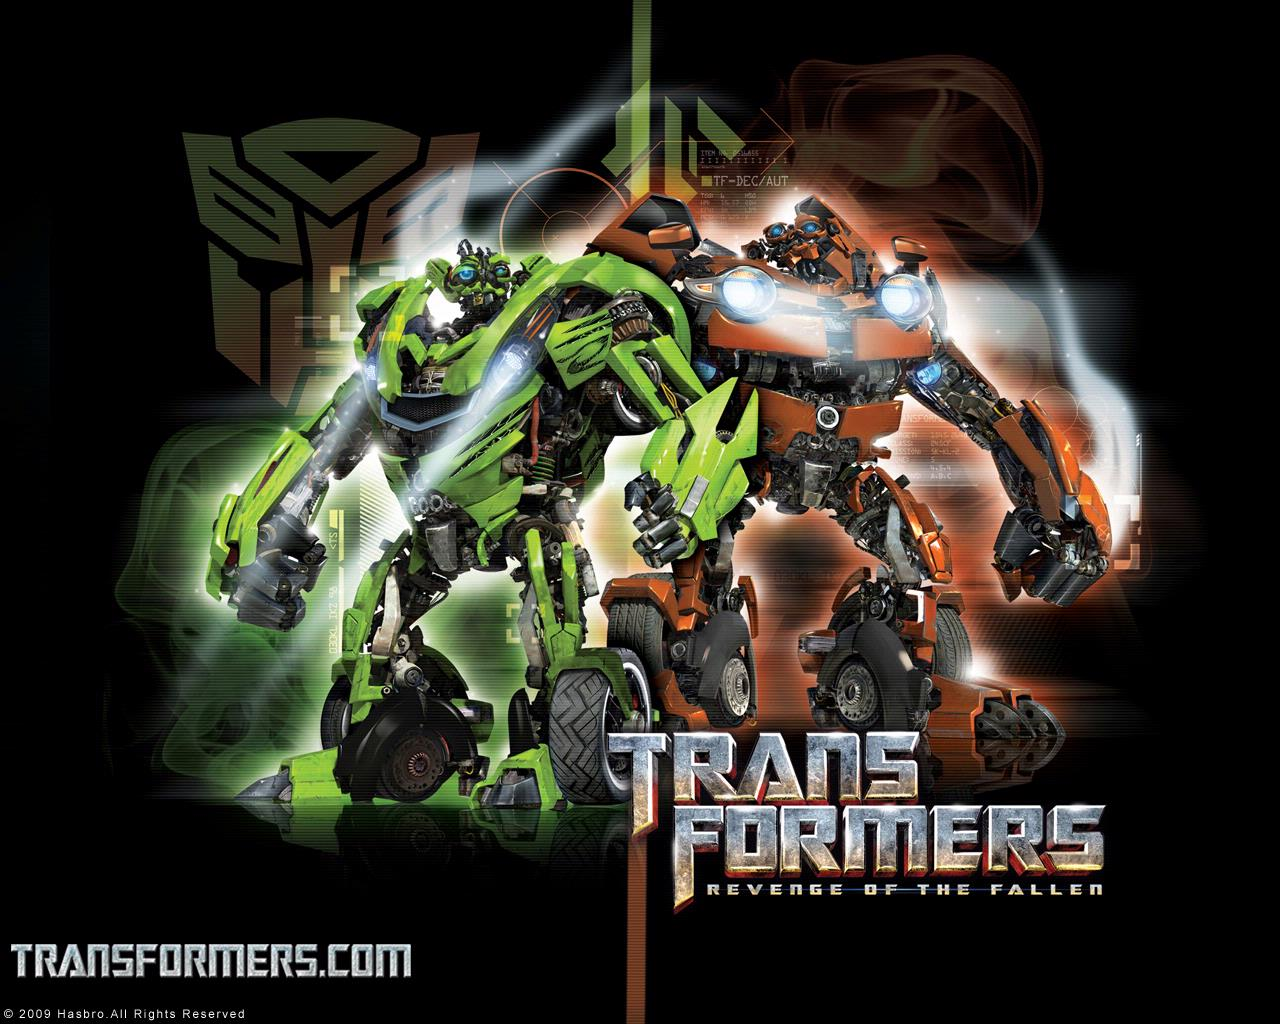 Pictures Transformers Movies Transformers Revenge Of The Fallen